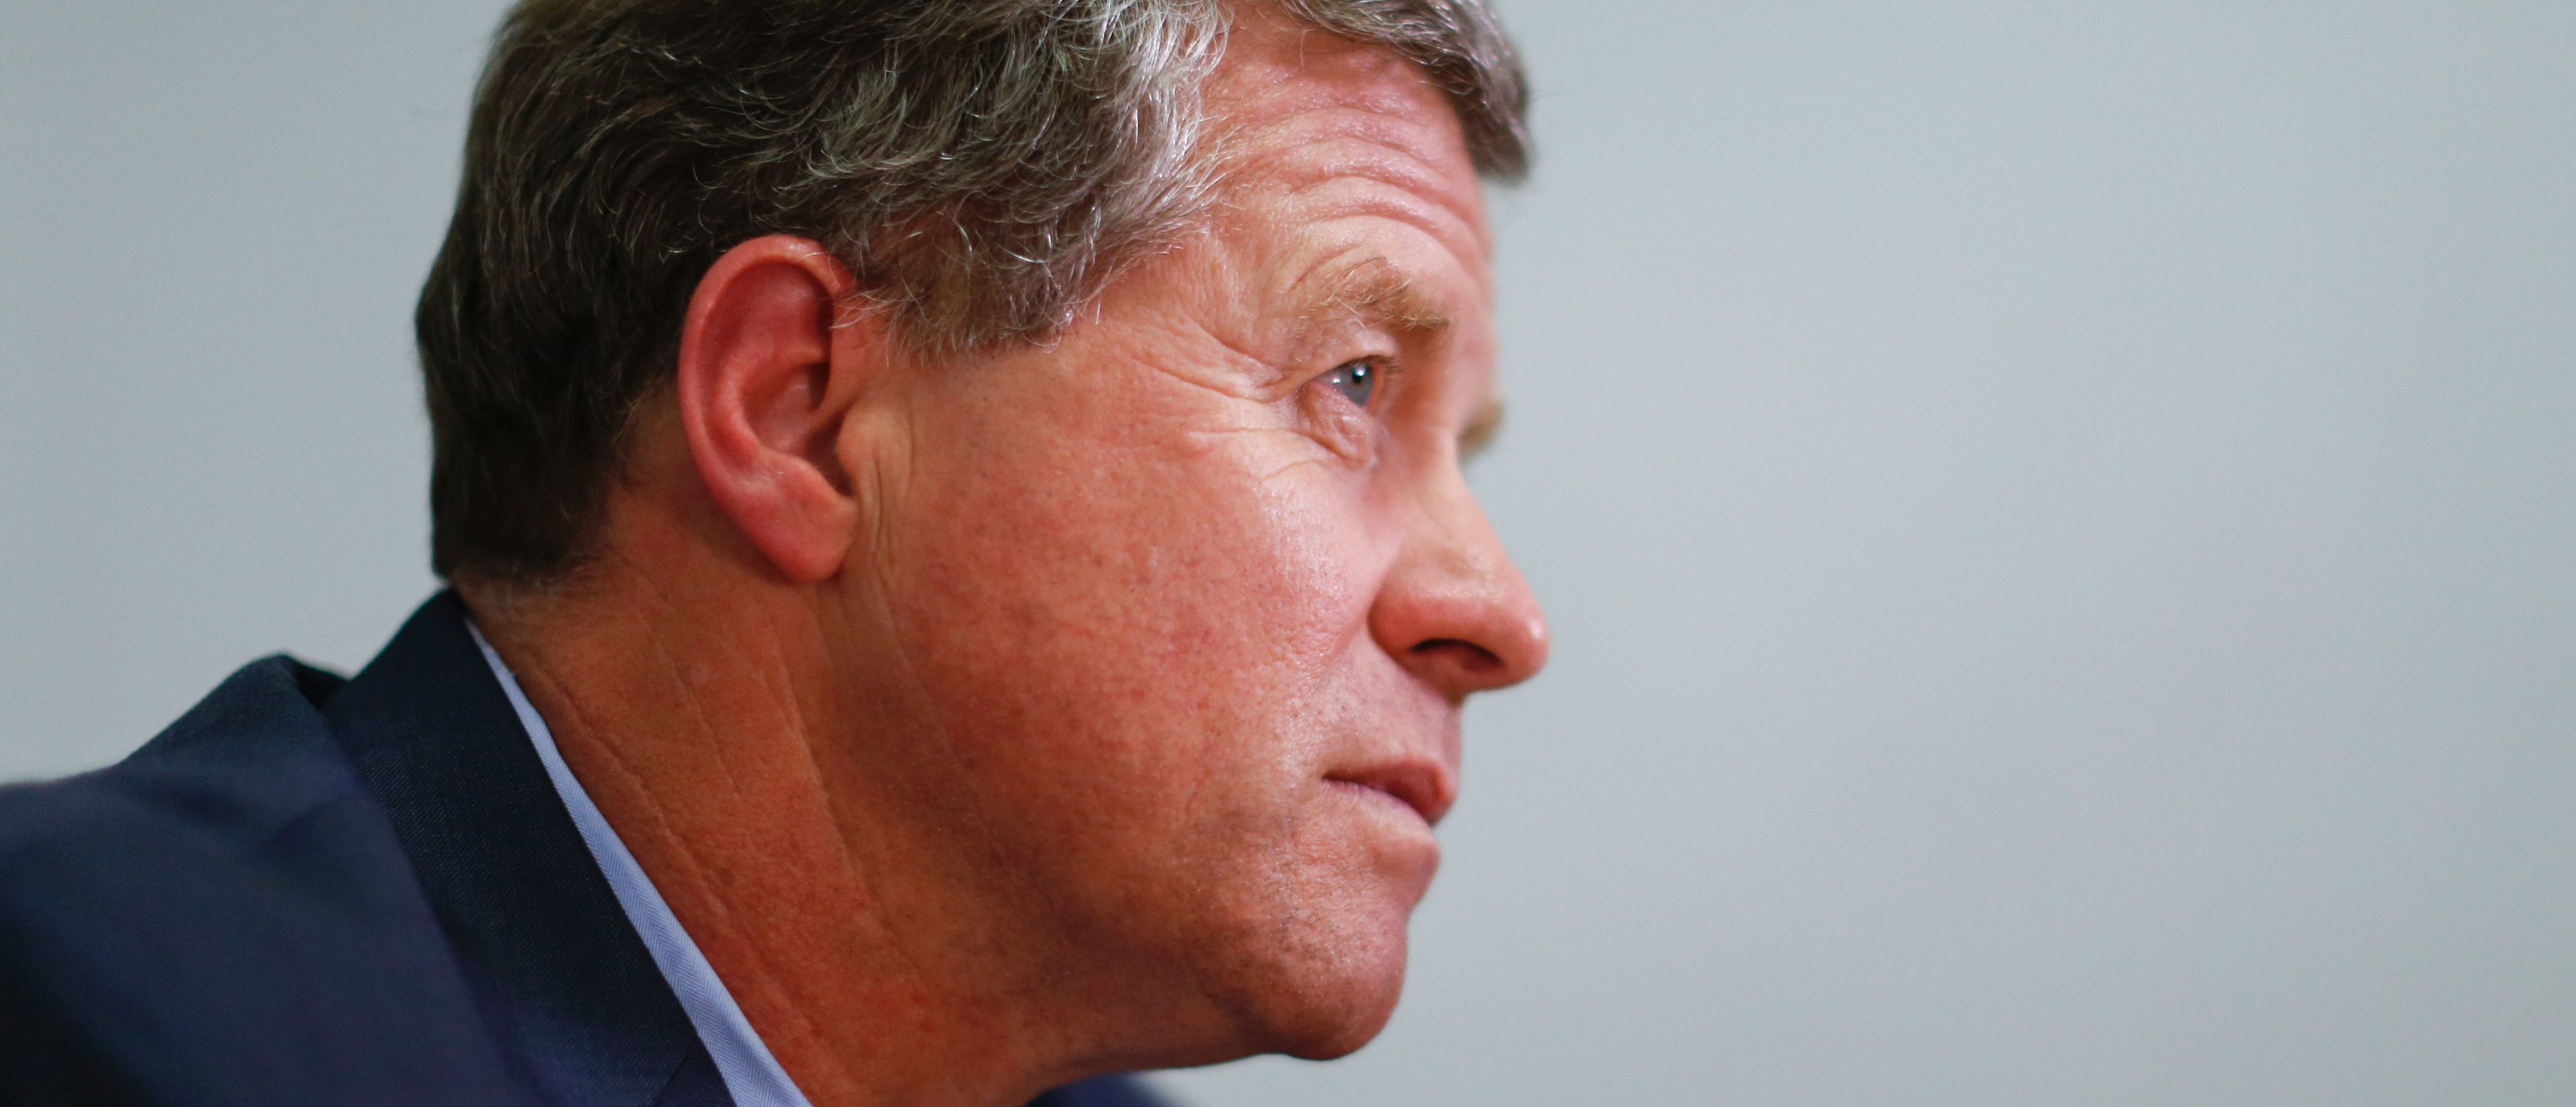 Republican Congressman Charlie Dent speaks during an interview at his campaign office in Allentown, Pennsylvania on November 2, 2016. / AFP / EDUARDO MUNOZ ALVAREZ (Photo credit should read EDUARDO MUNOZ ALVAREZ/AFP/Getty Images)